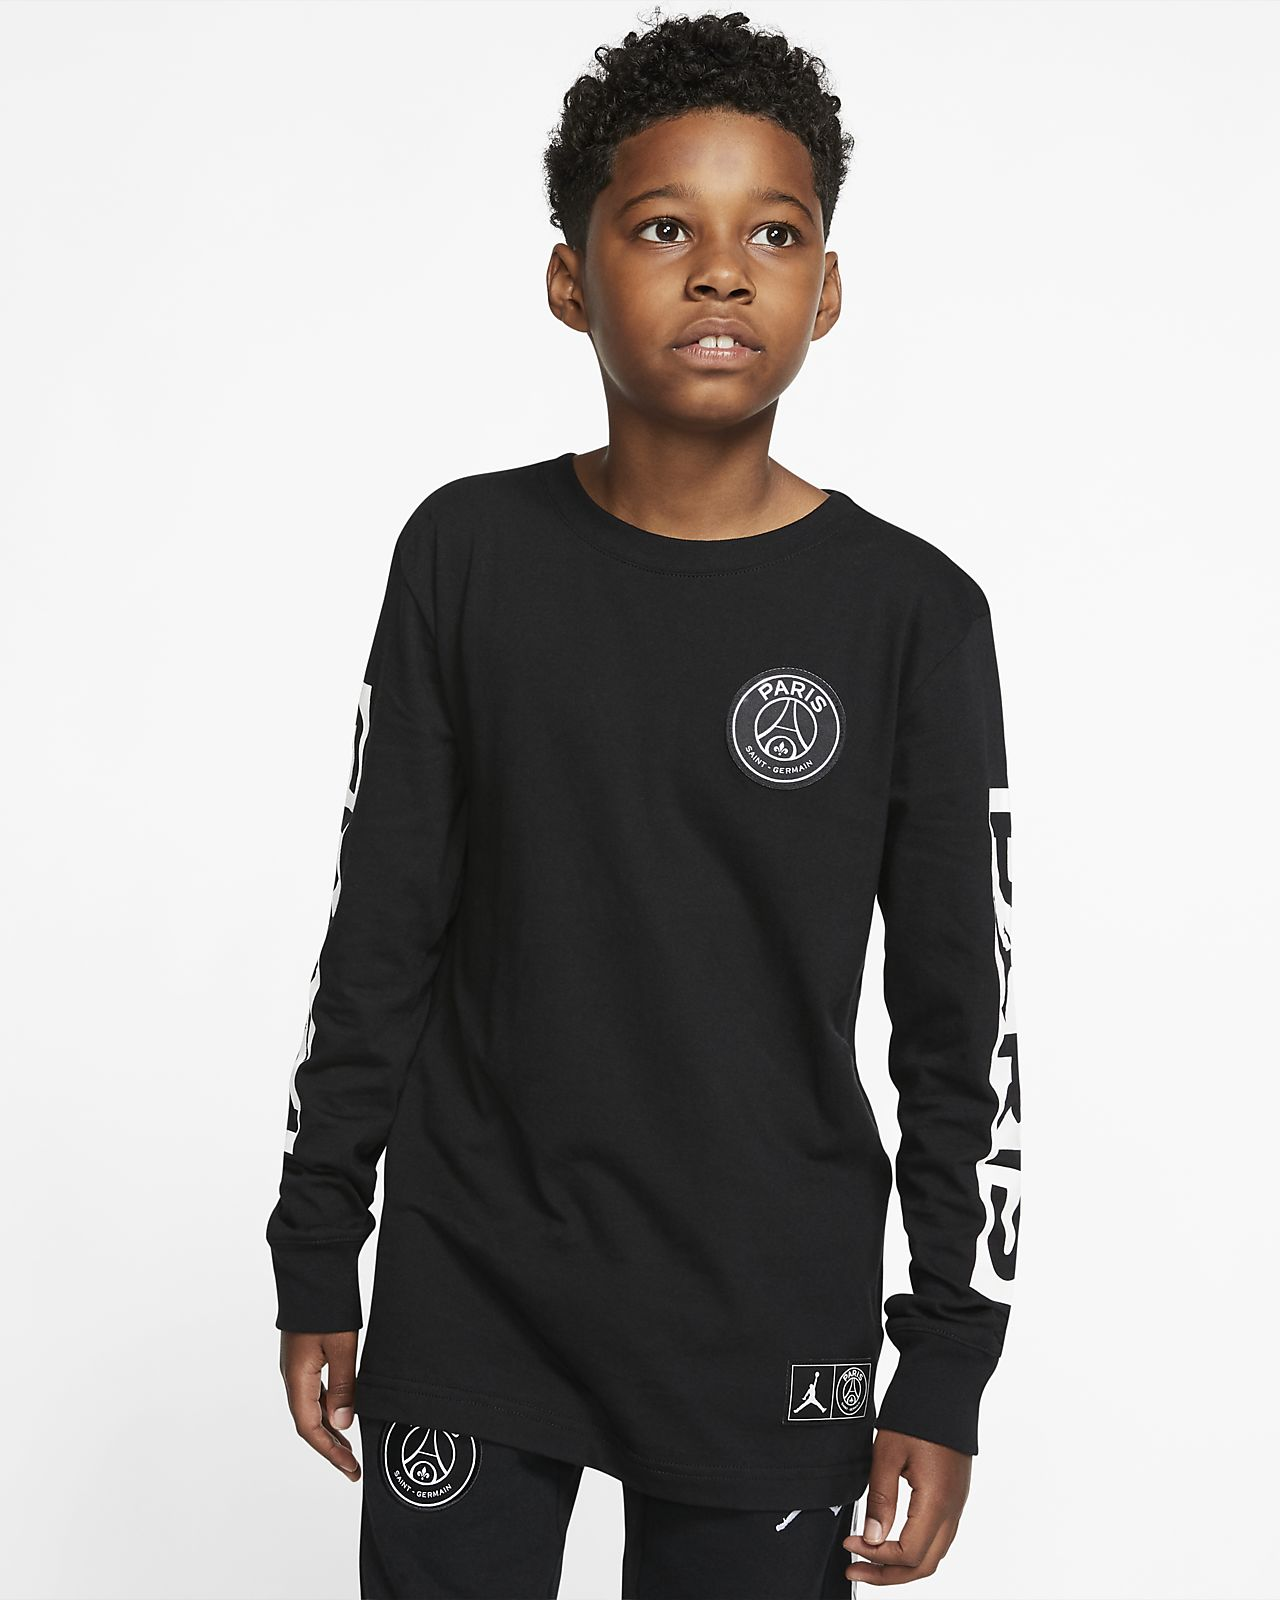 PSG Older Kids' (Boys') Long-Sleeve T-Shirt